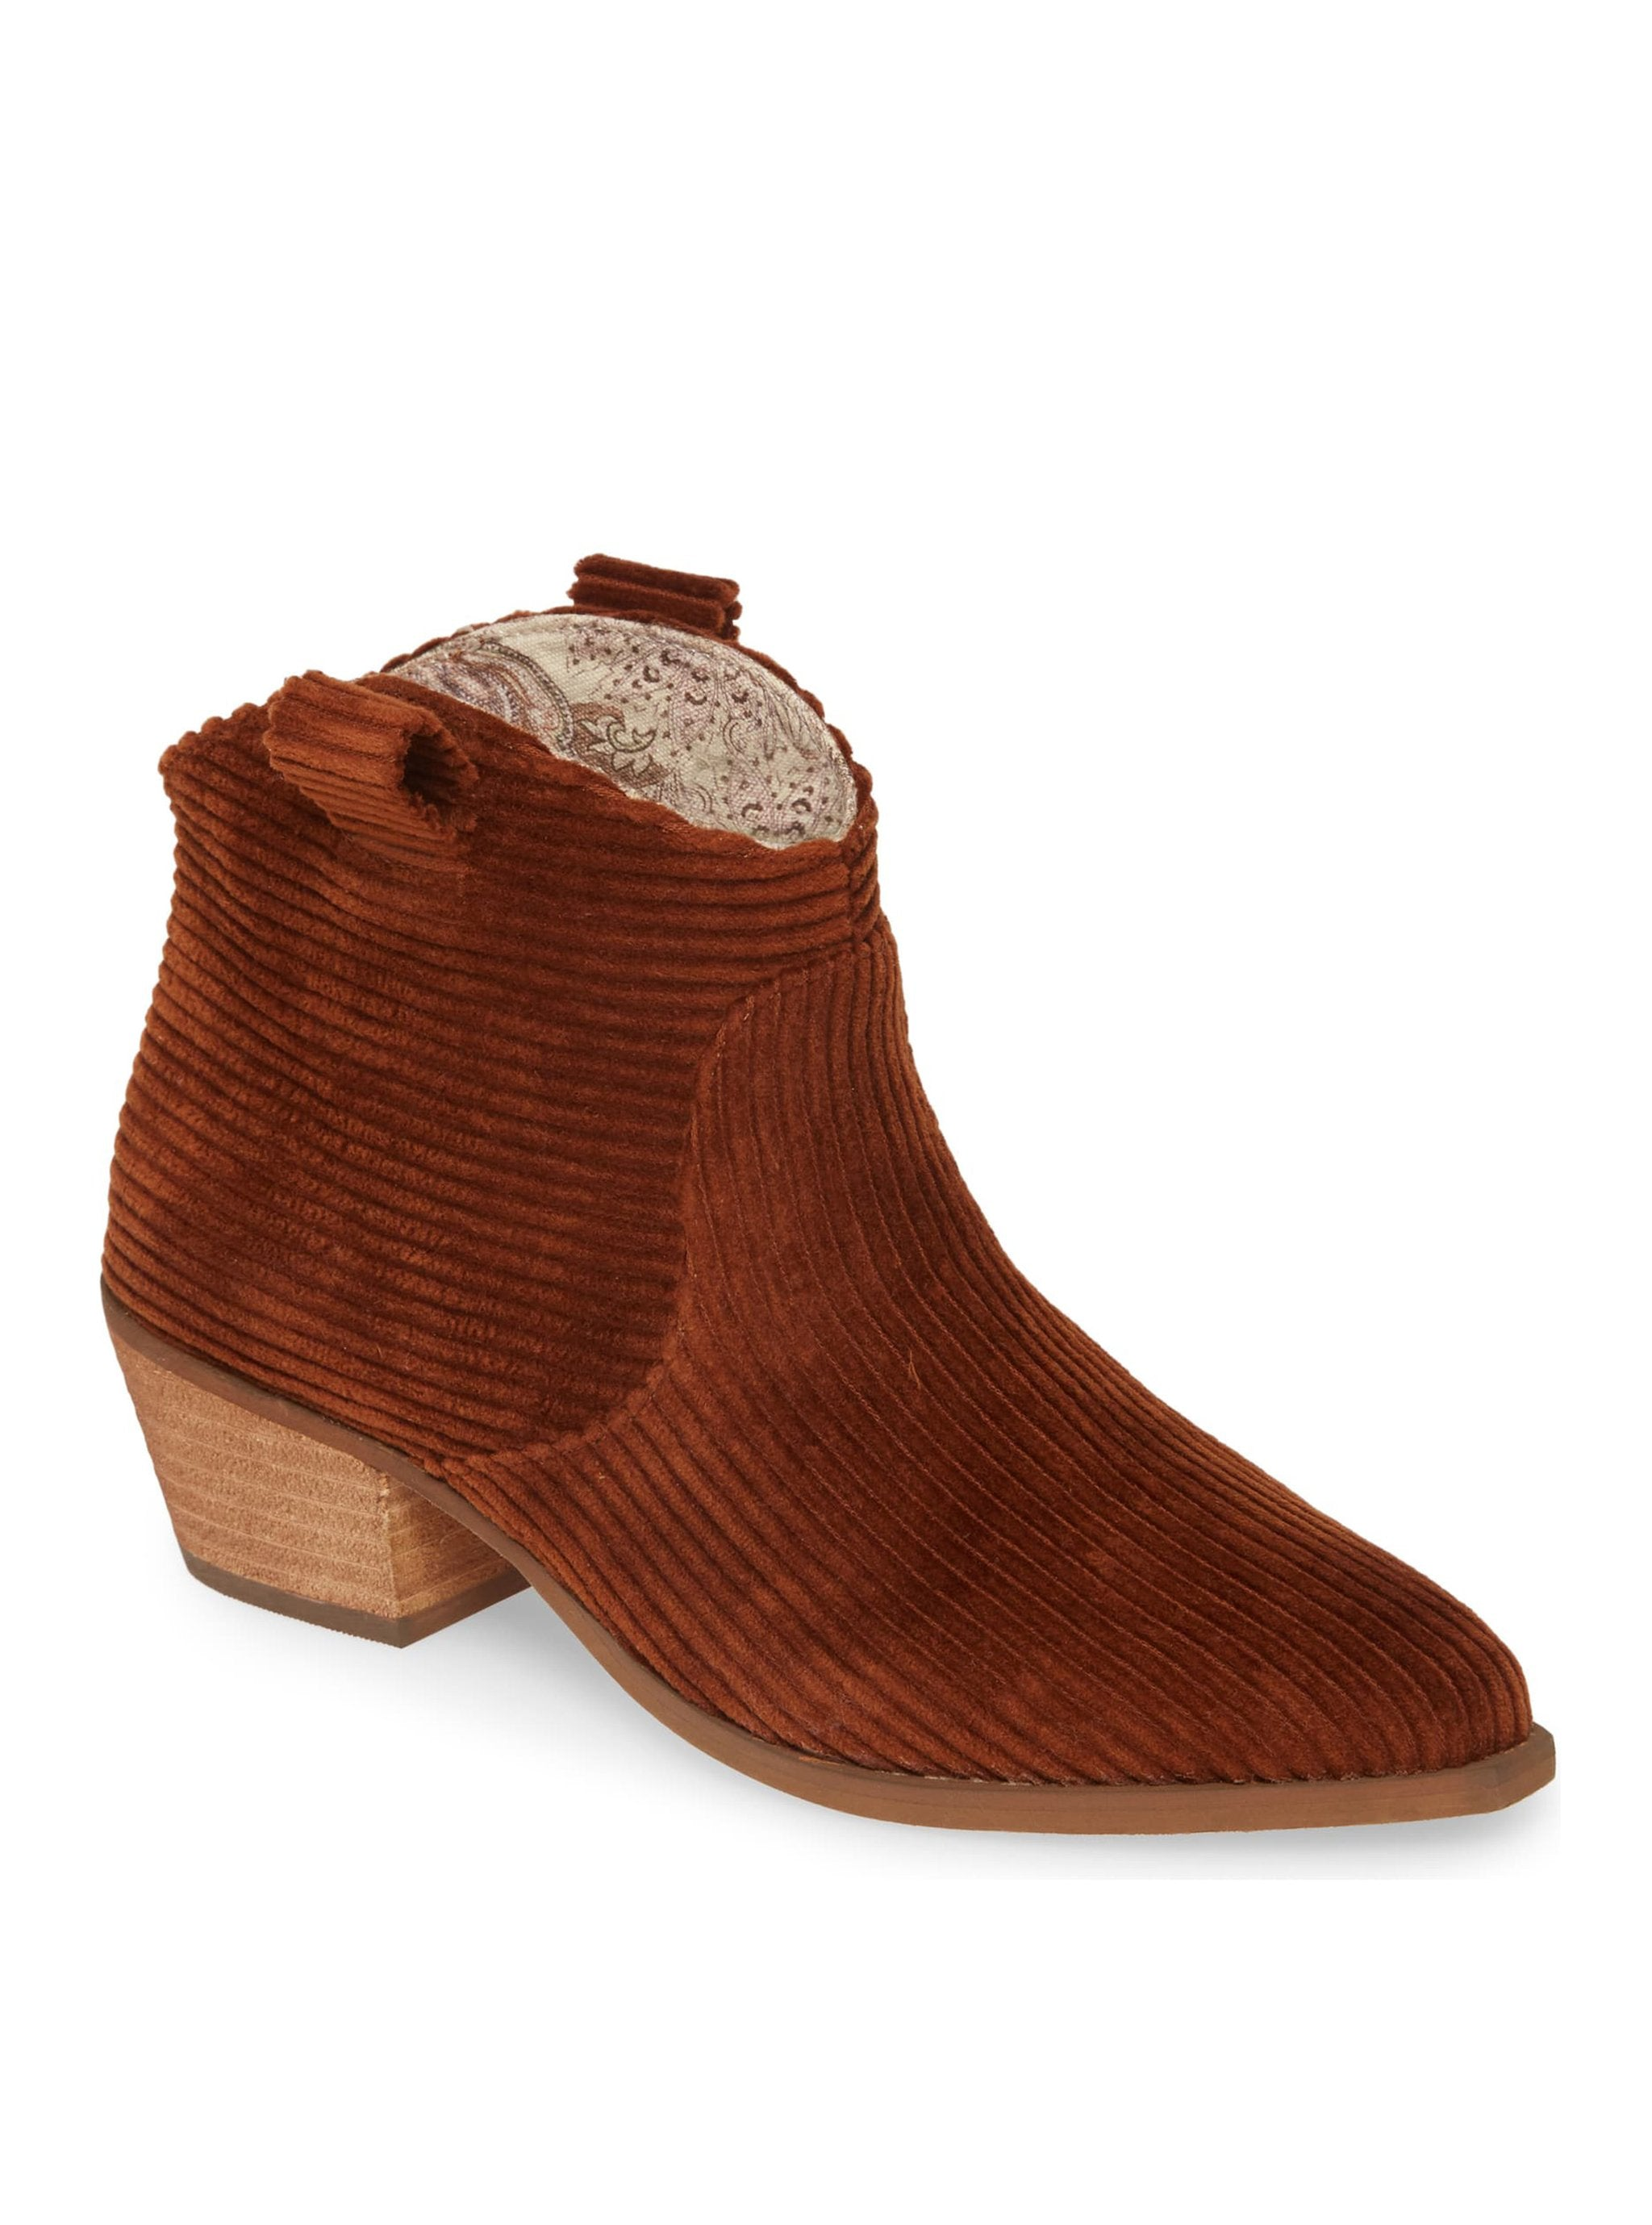 Band of Gypsies Corduroy Boots